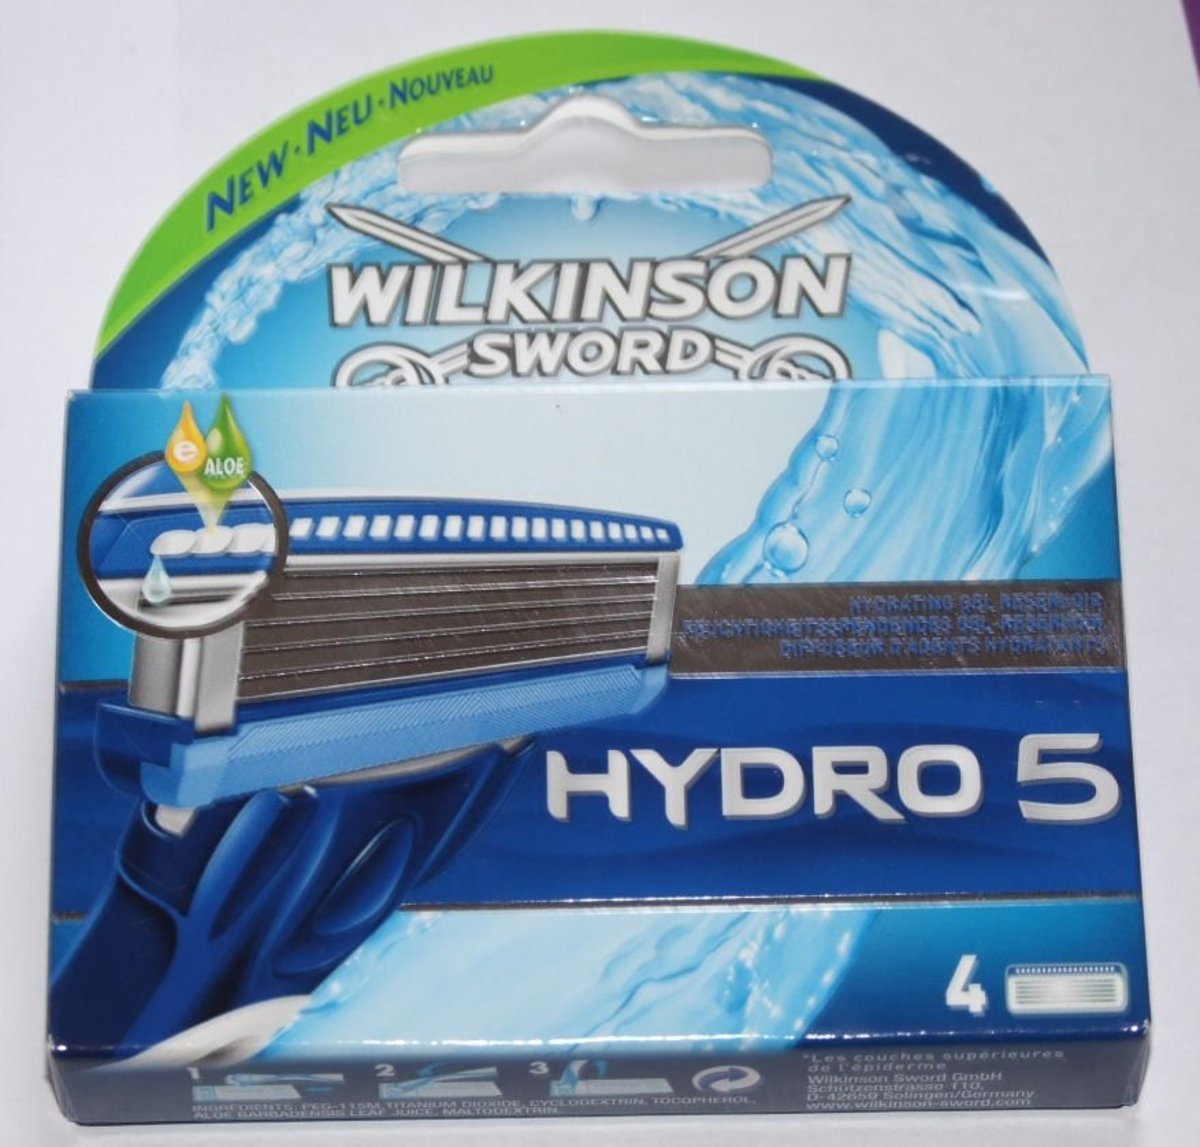 Wilkinsons Sword Hydro 5 Review: Vs the Quattro and Gillette Fusion